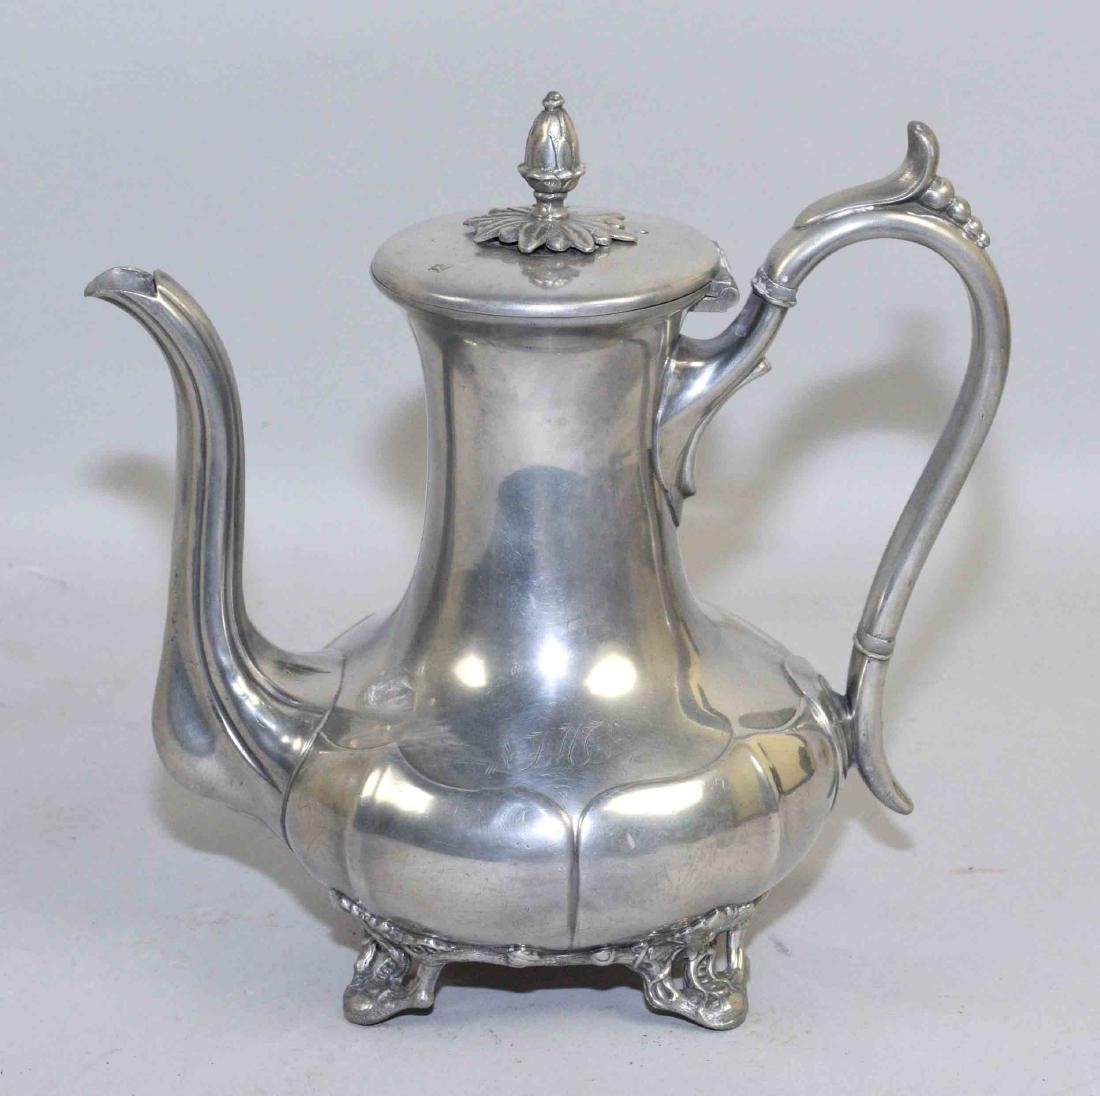 19th C. PEWTER COFFEE POT, by James Dixon & Sons,